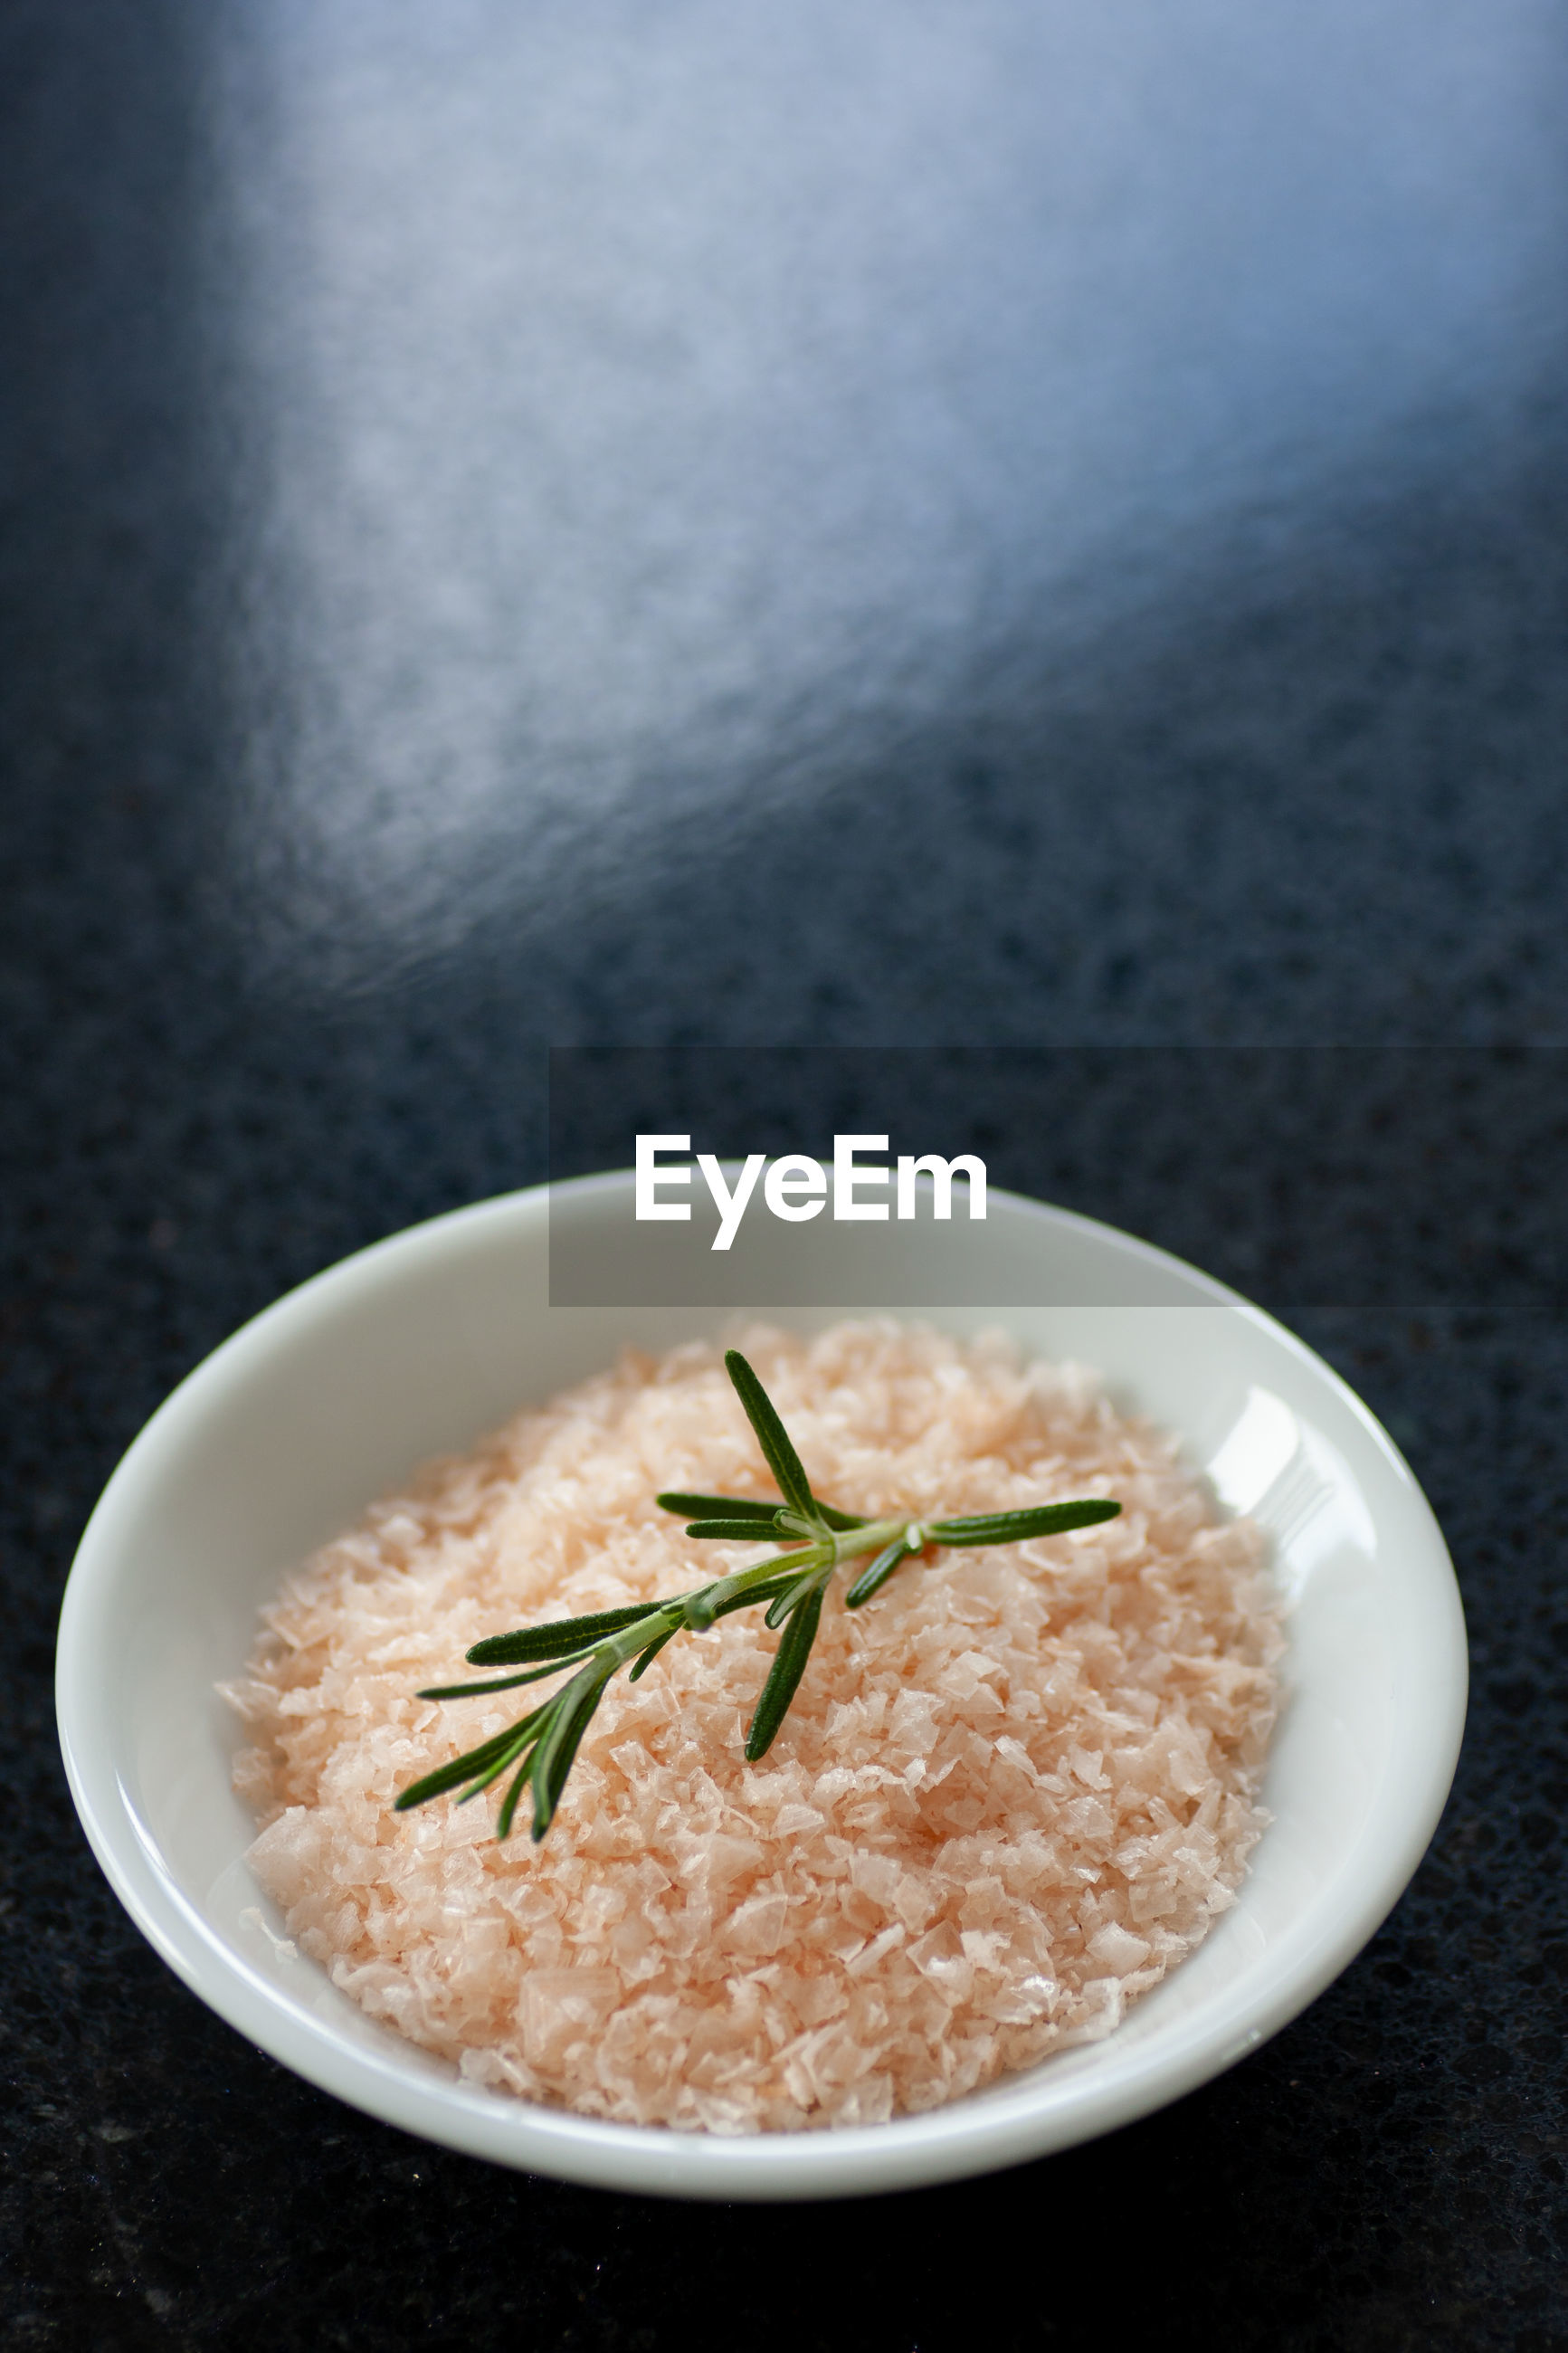 Pink salt with a sprig of rosemary.